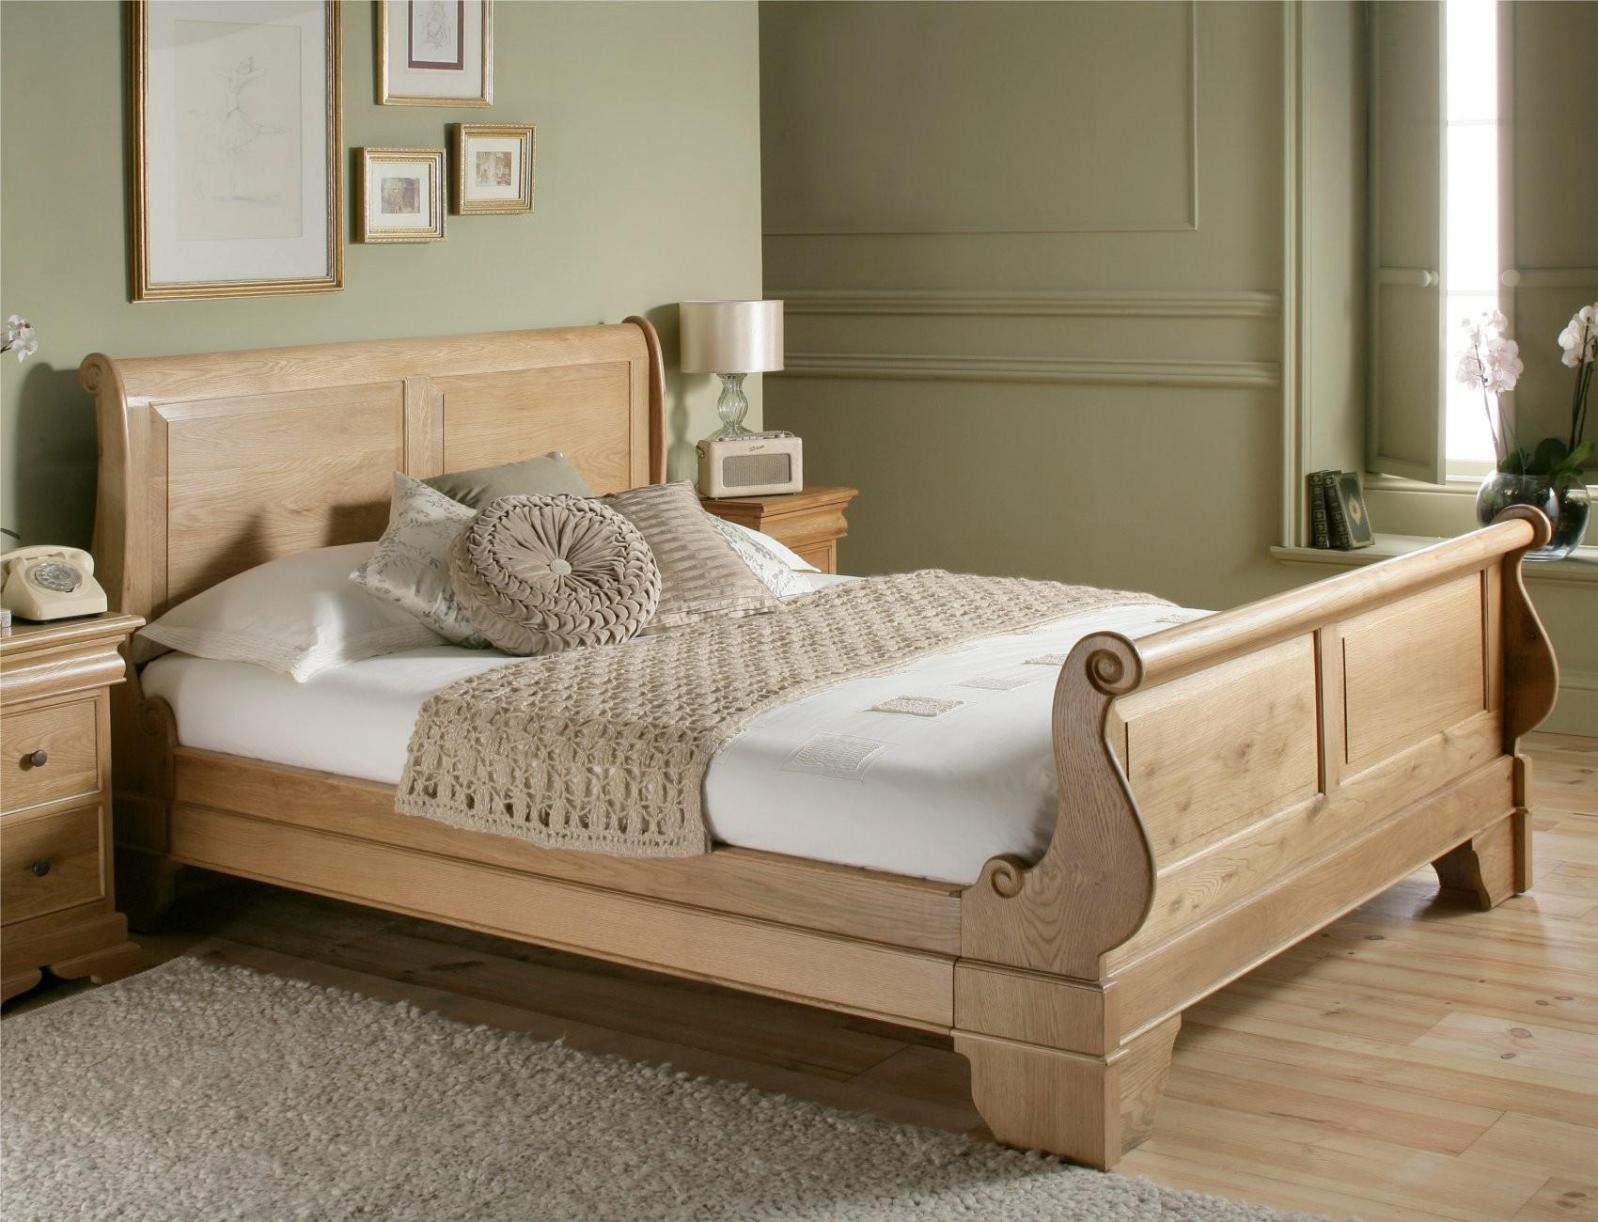 Image of: Wooden Sleigh Bed Frame